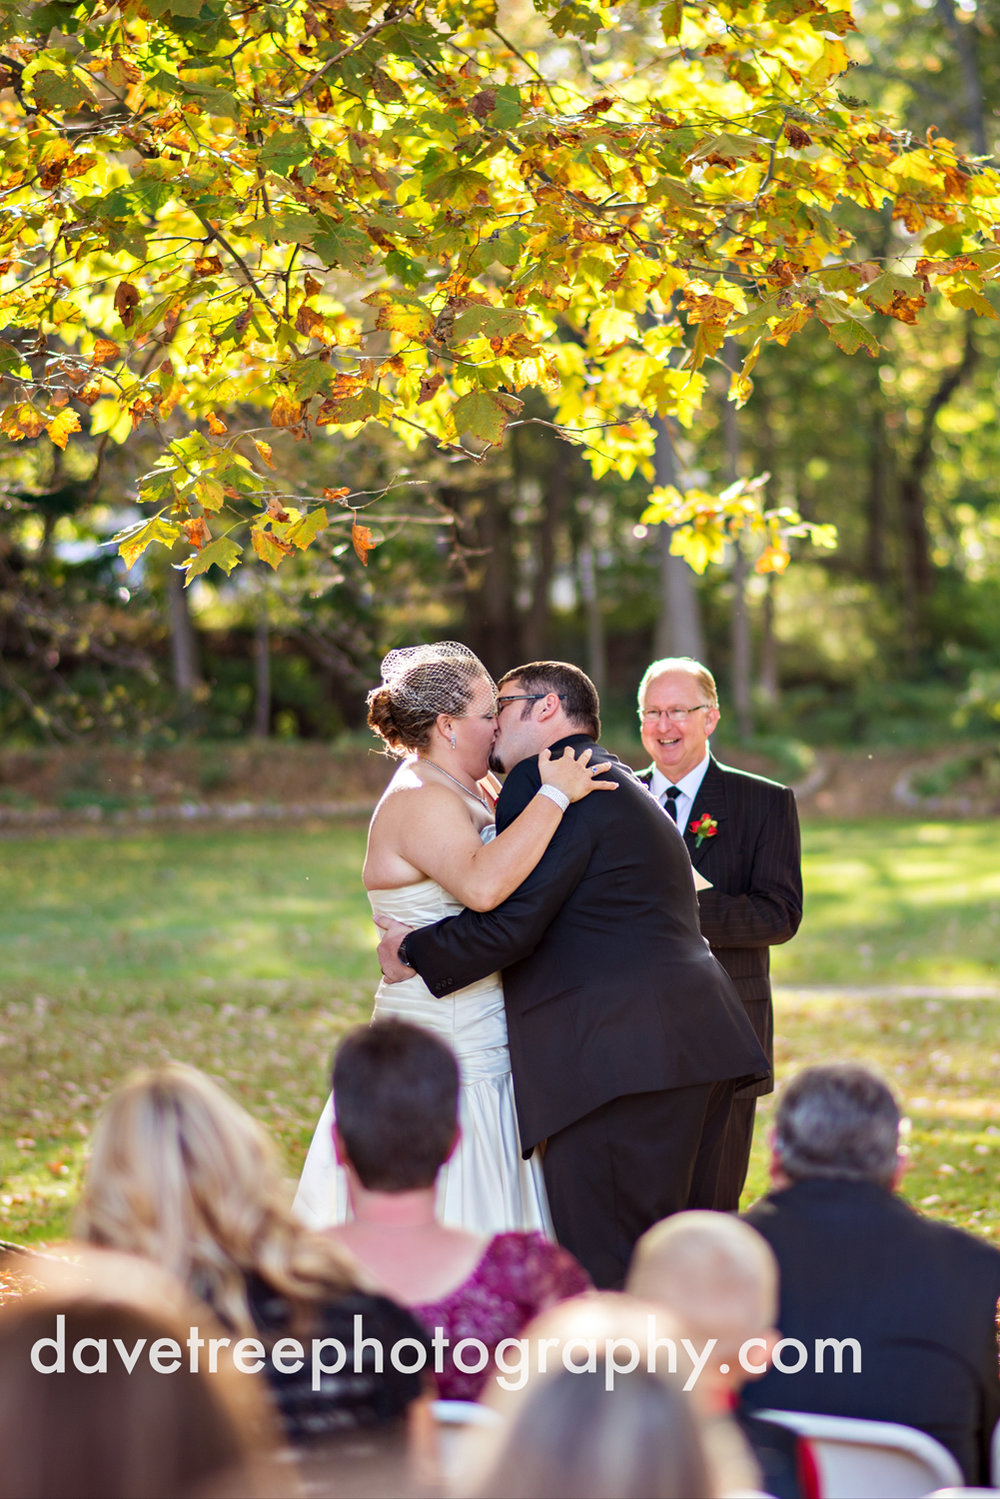 hillsdale_wedding_photographer_hillsdale_wedding_31.jpg